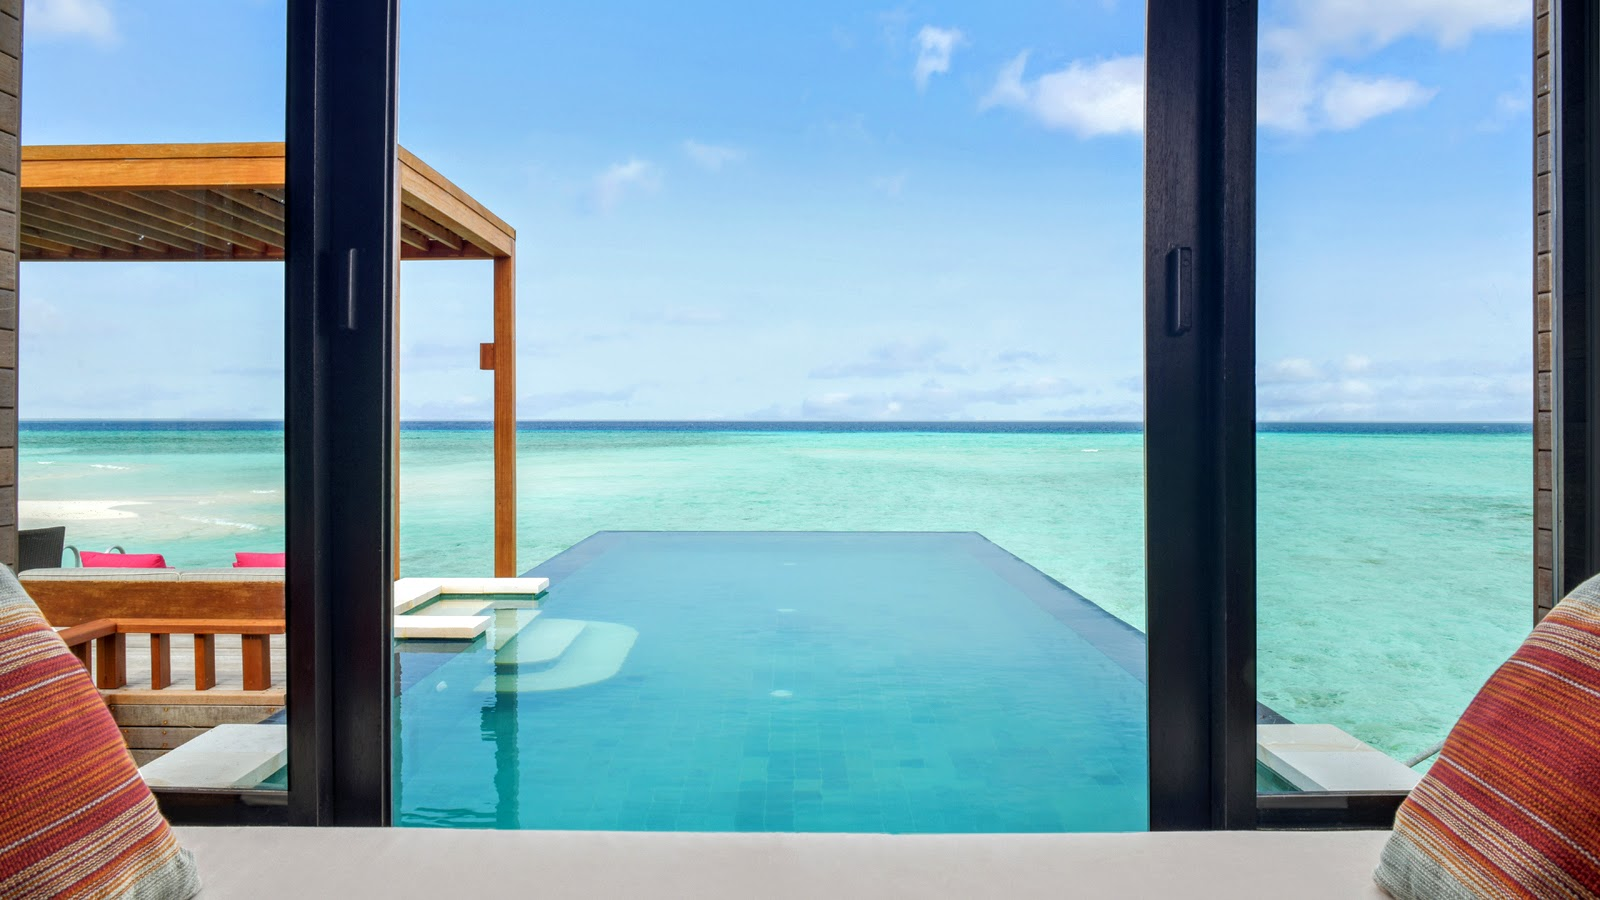 New Water Villas, Four Seasons Resort Maldives at Kuda Huraa